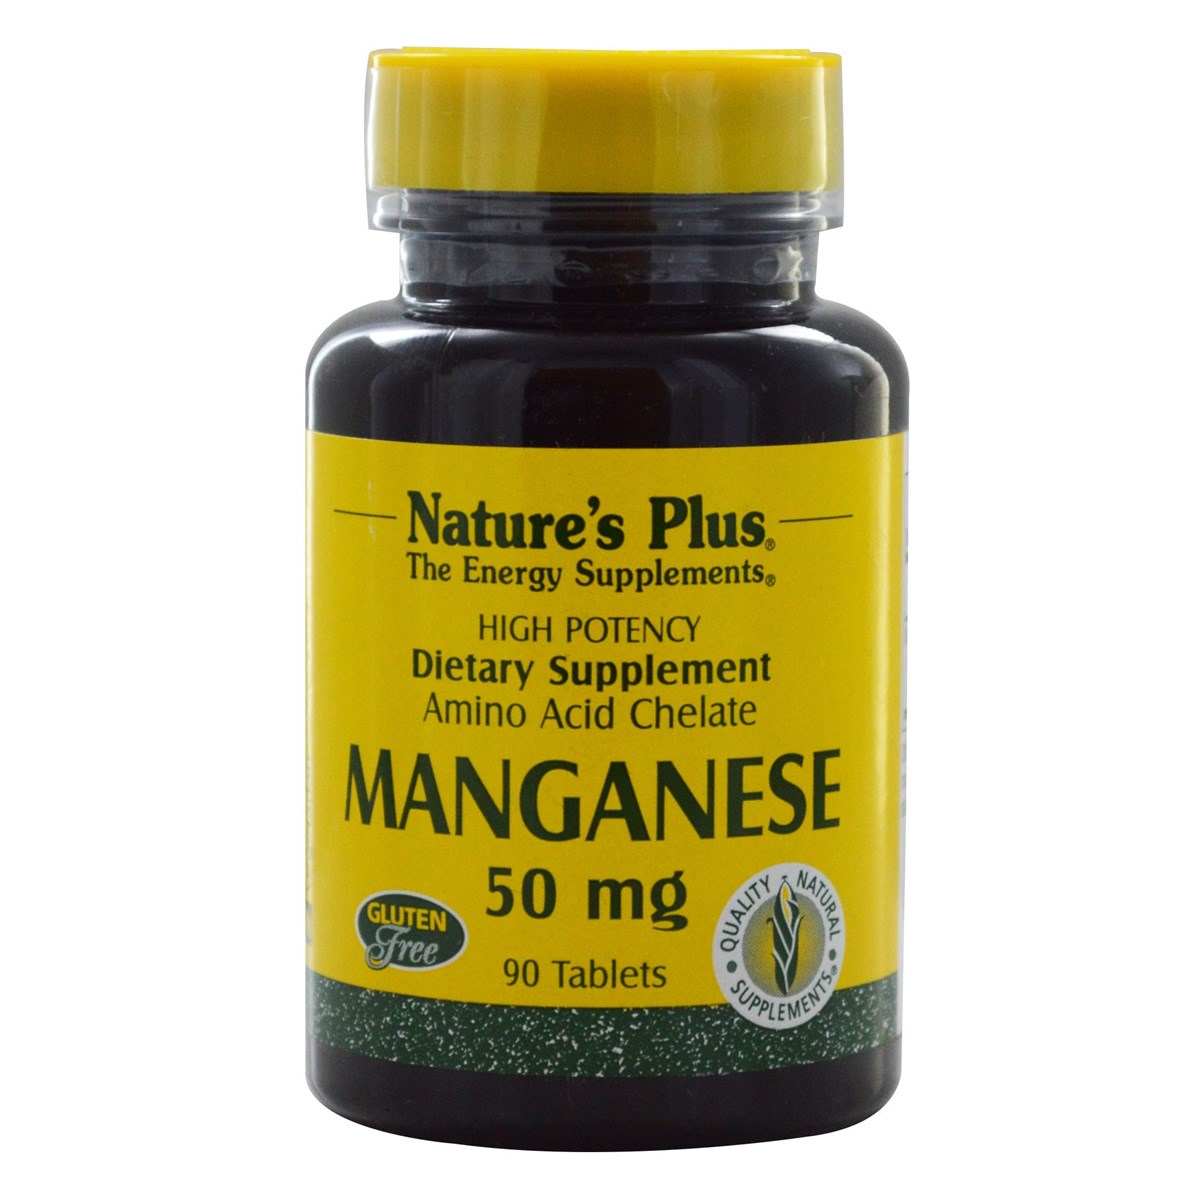 Natures Plus Manganese 50 mg Tablets